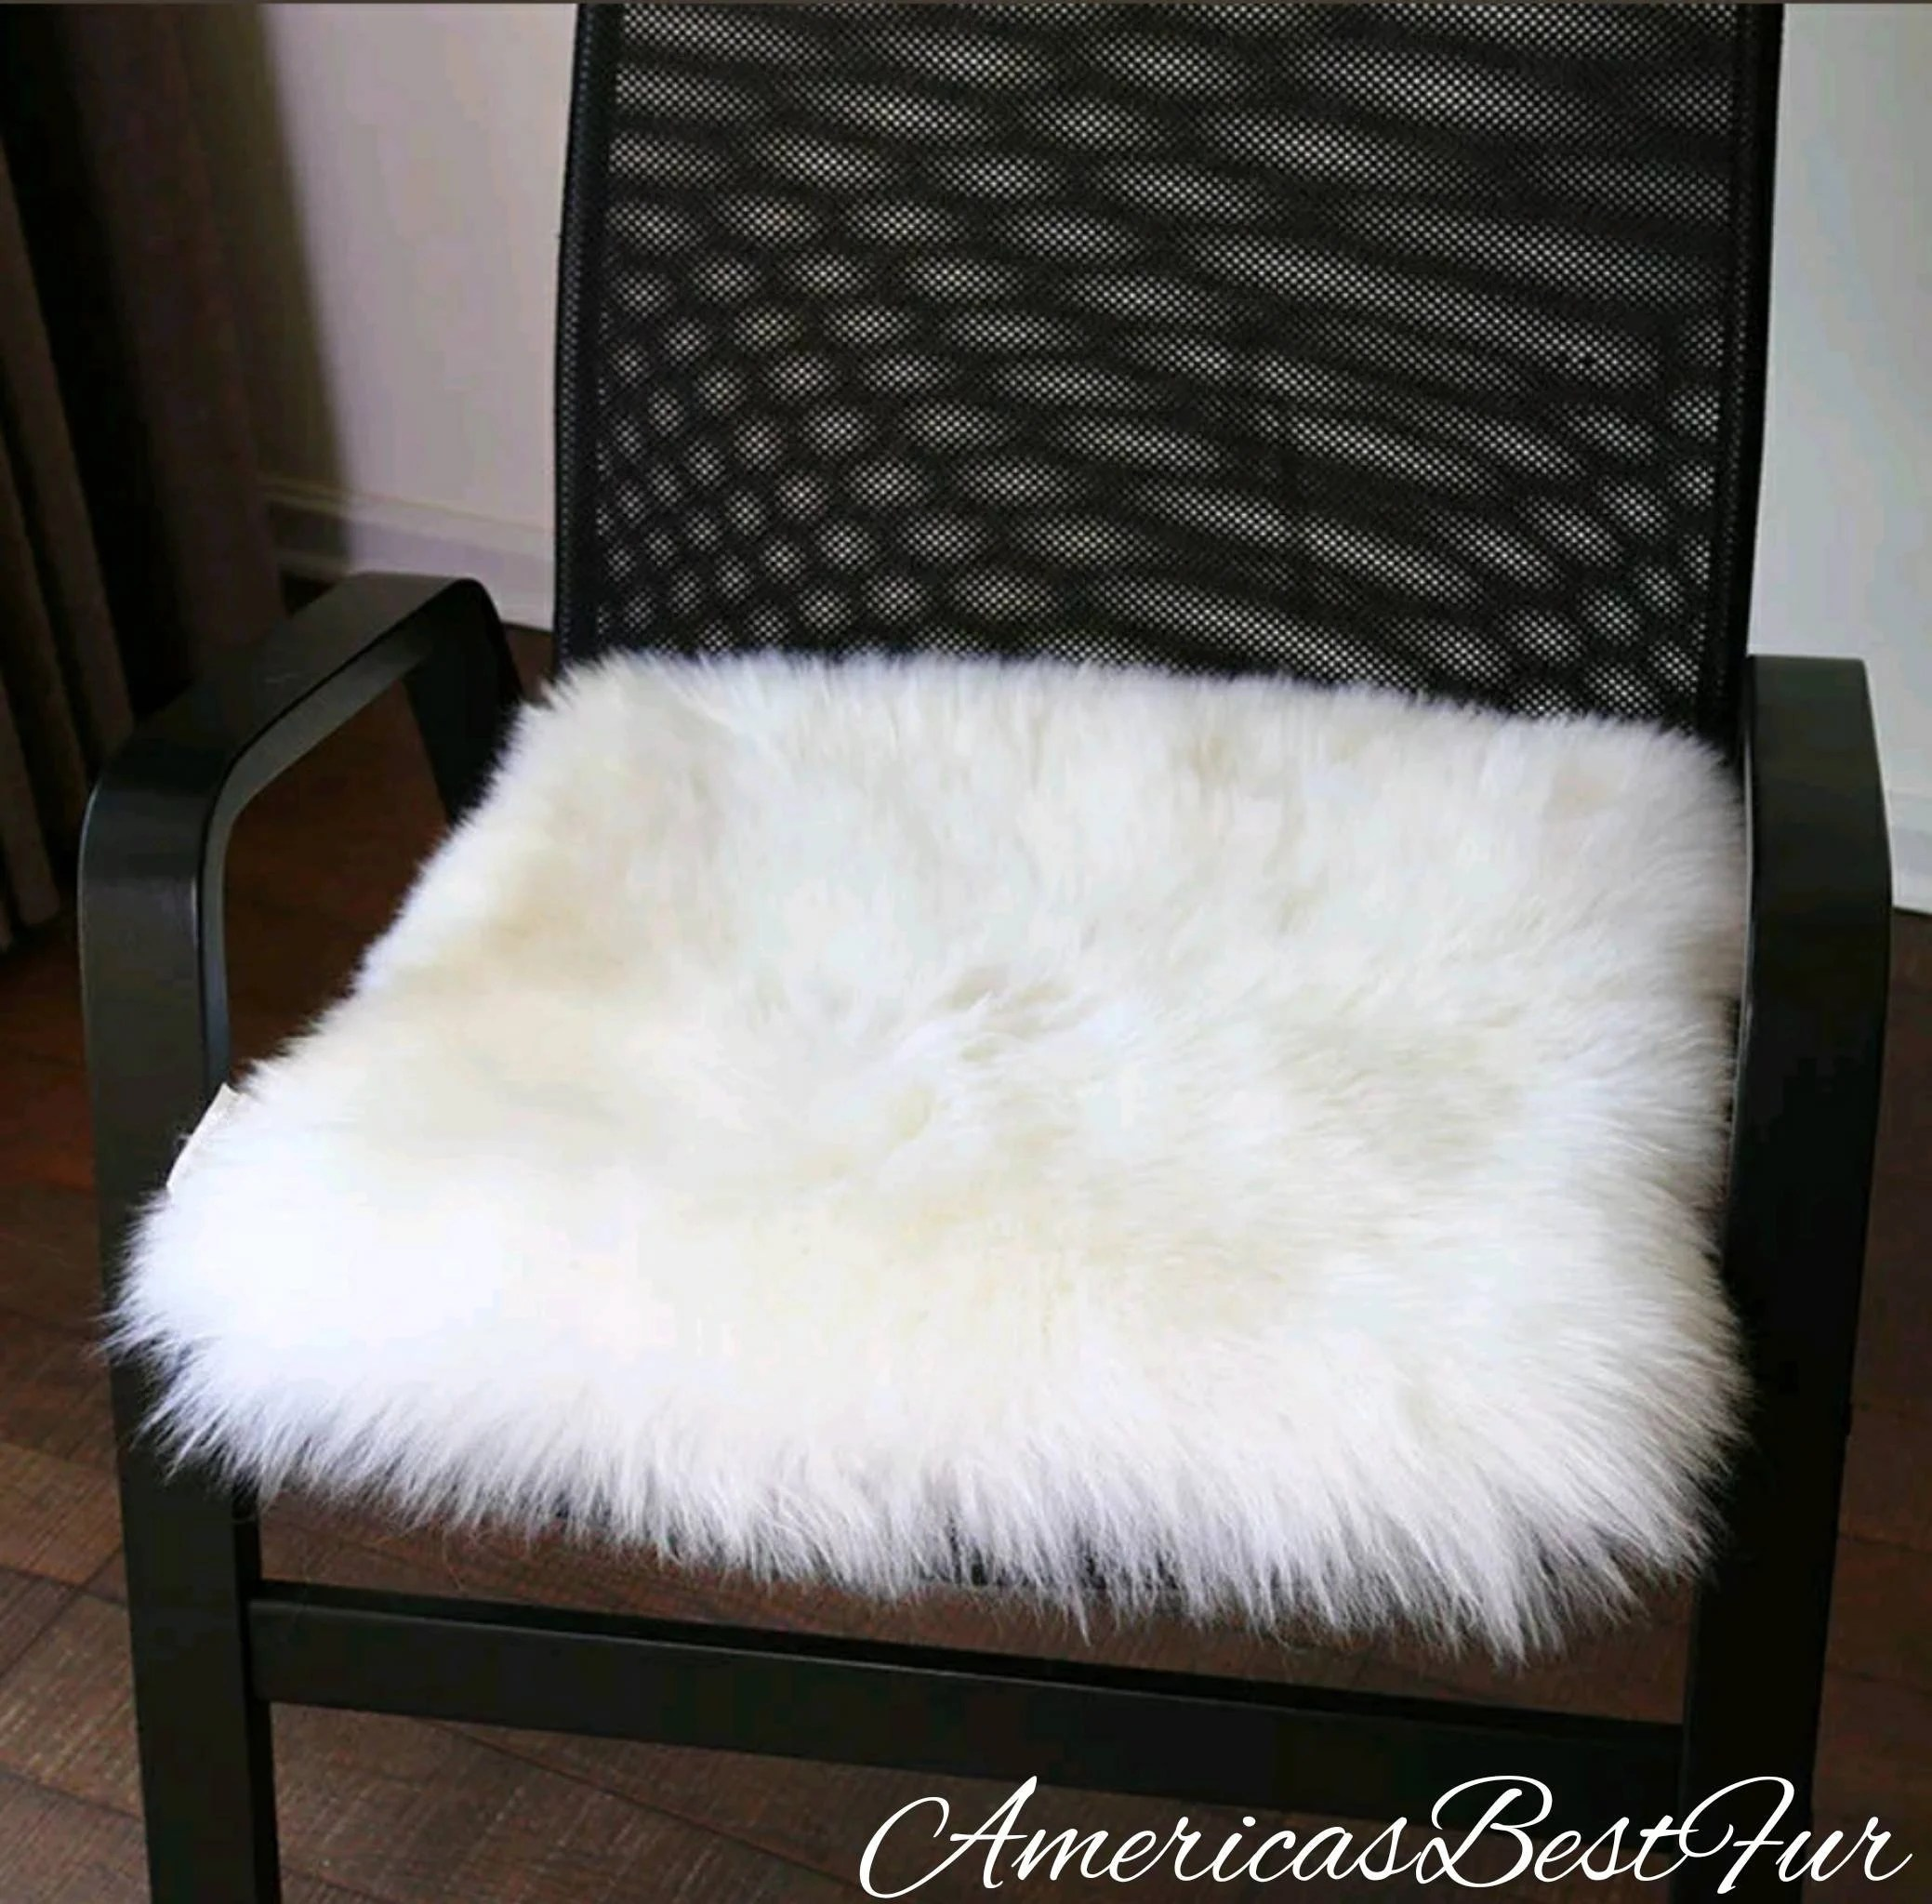 faux fur chair cover big joe bean bag filler etsy covers snow white wedding ceremony event luxurious pads